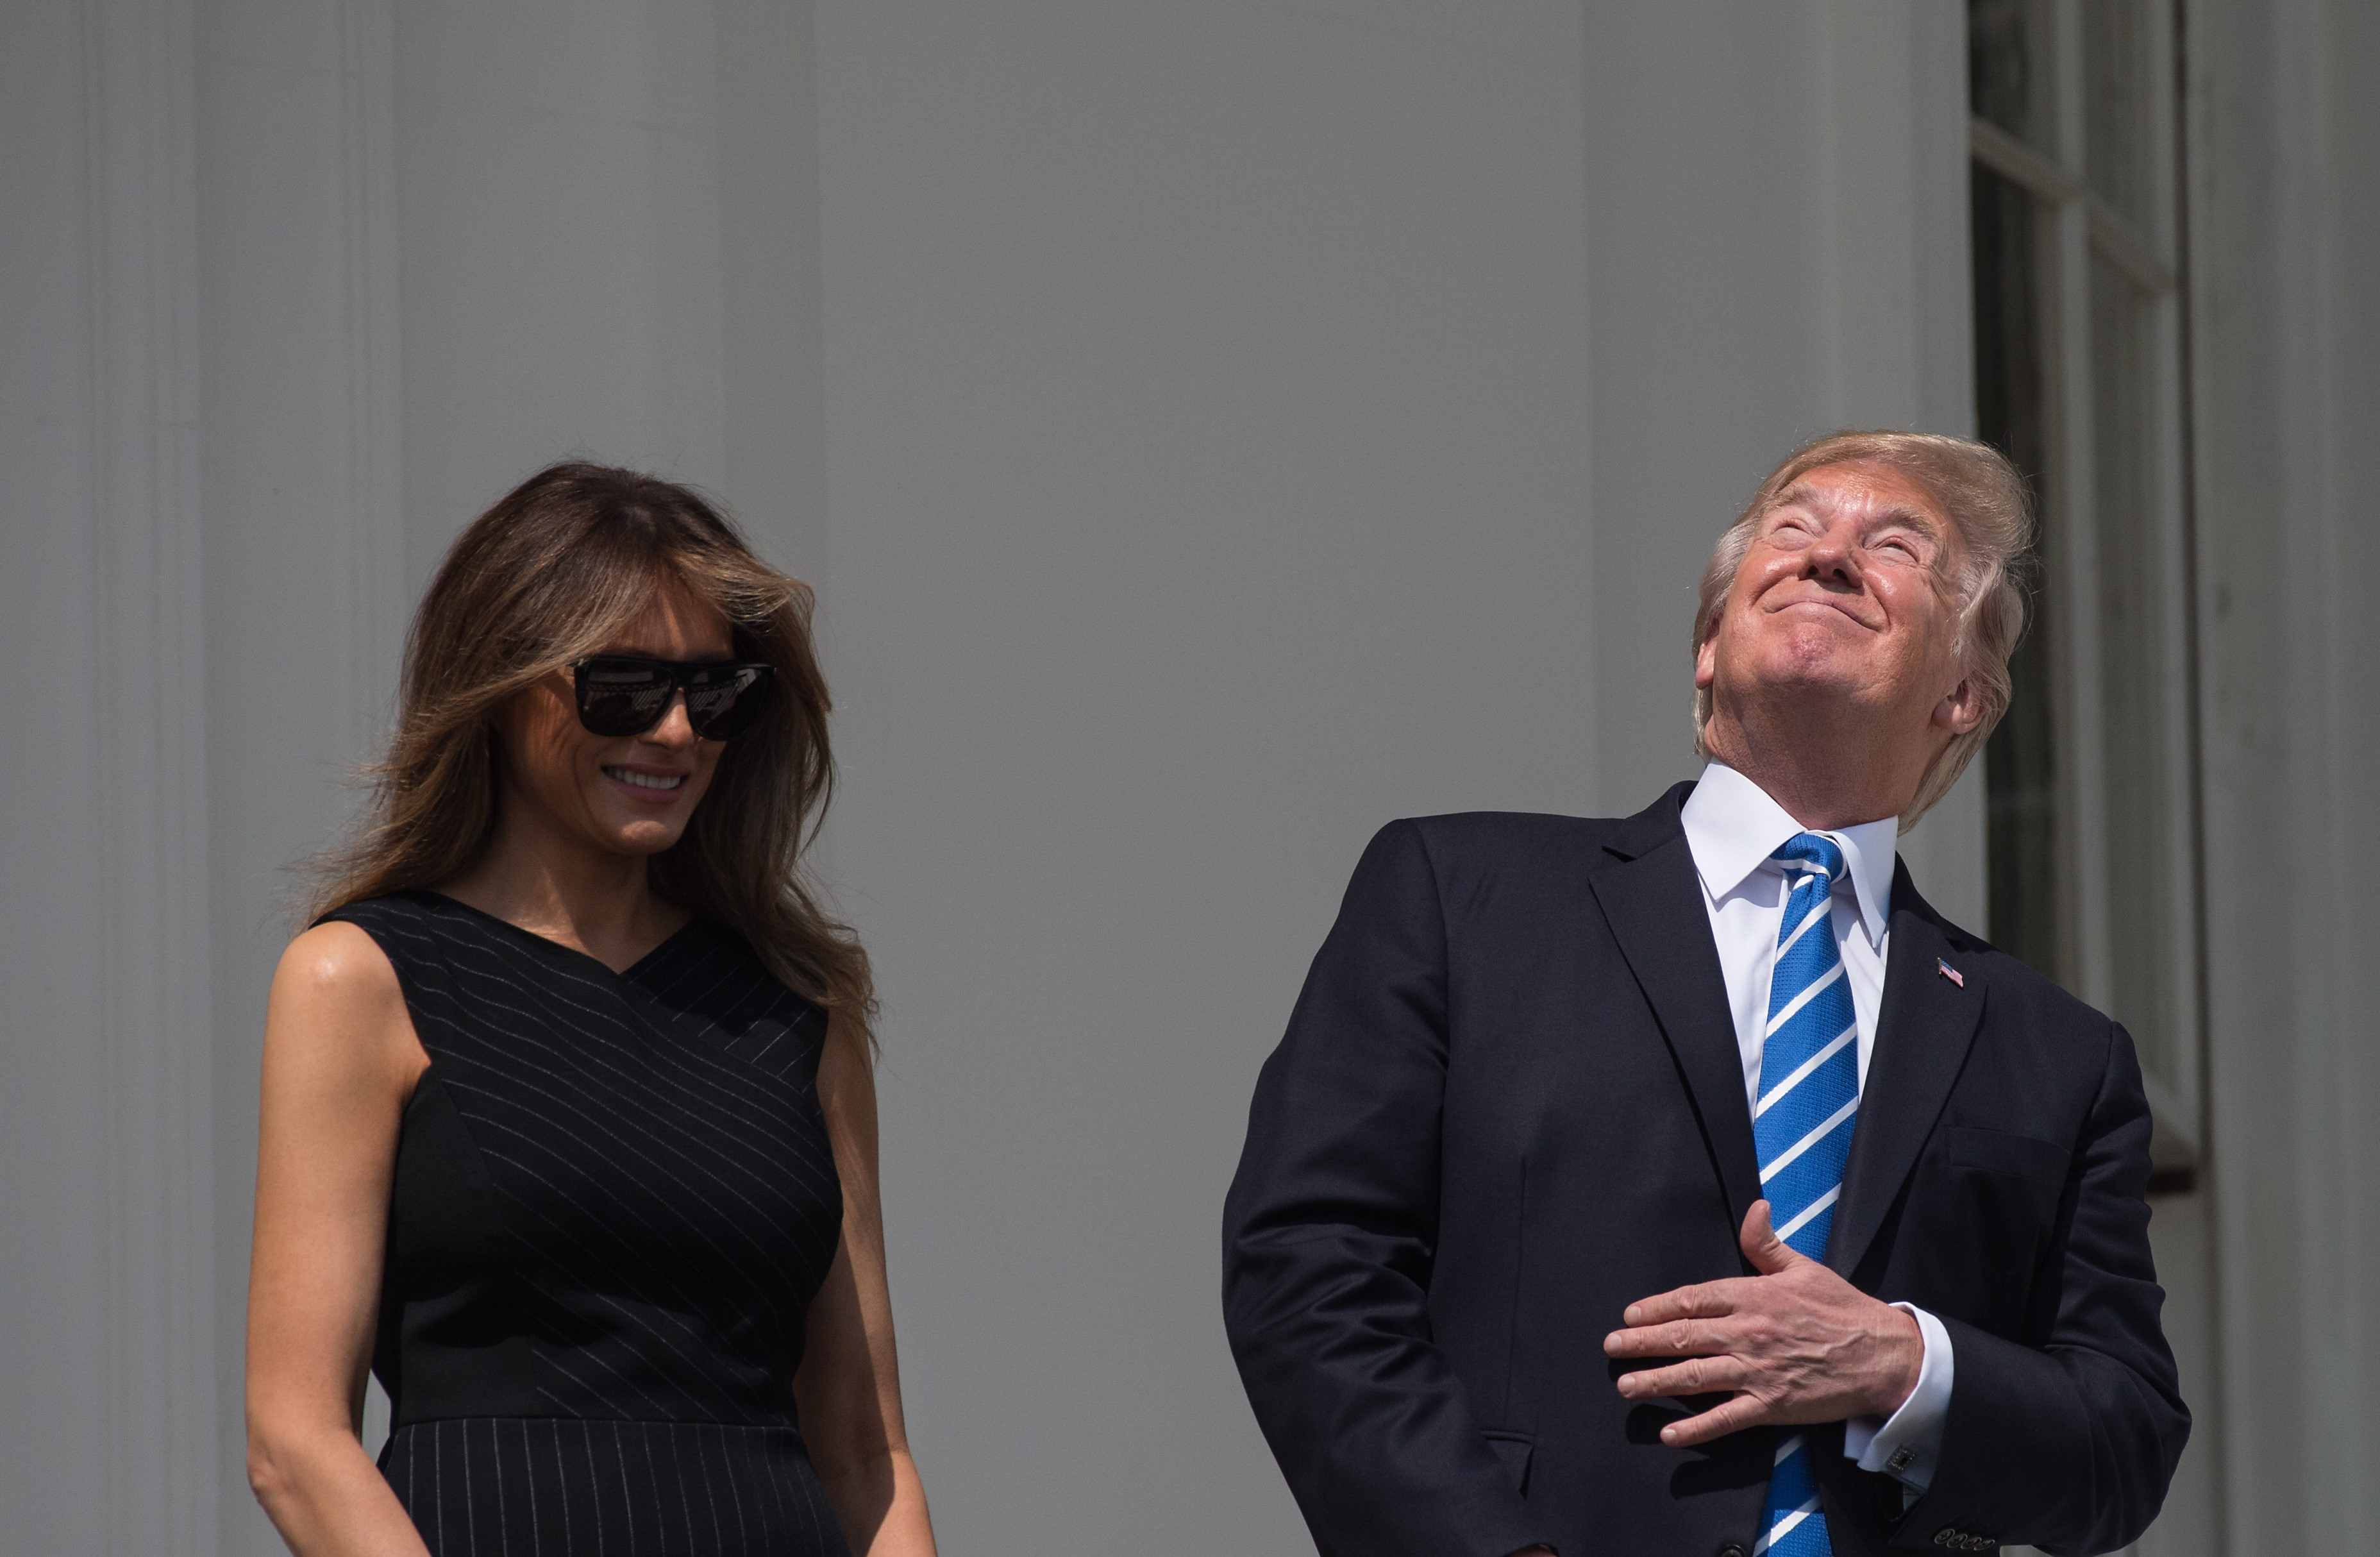 #45 staring directly at the sun